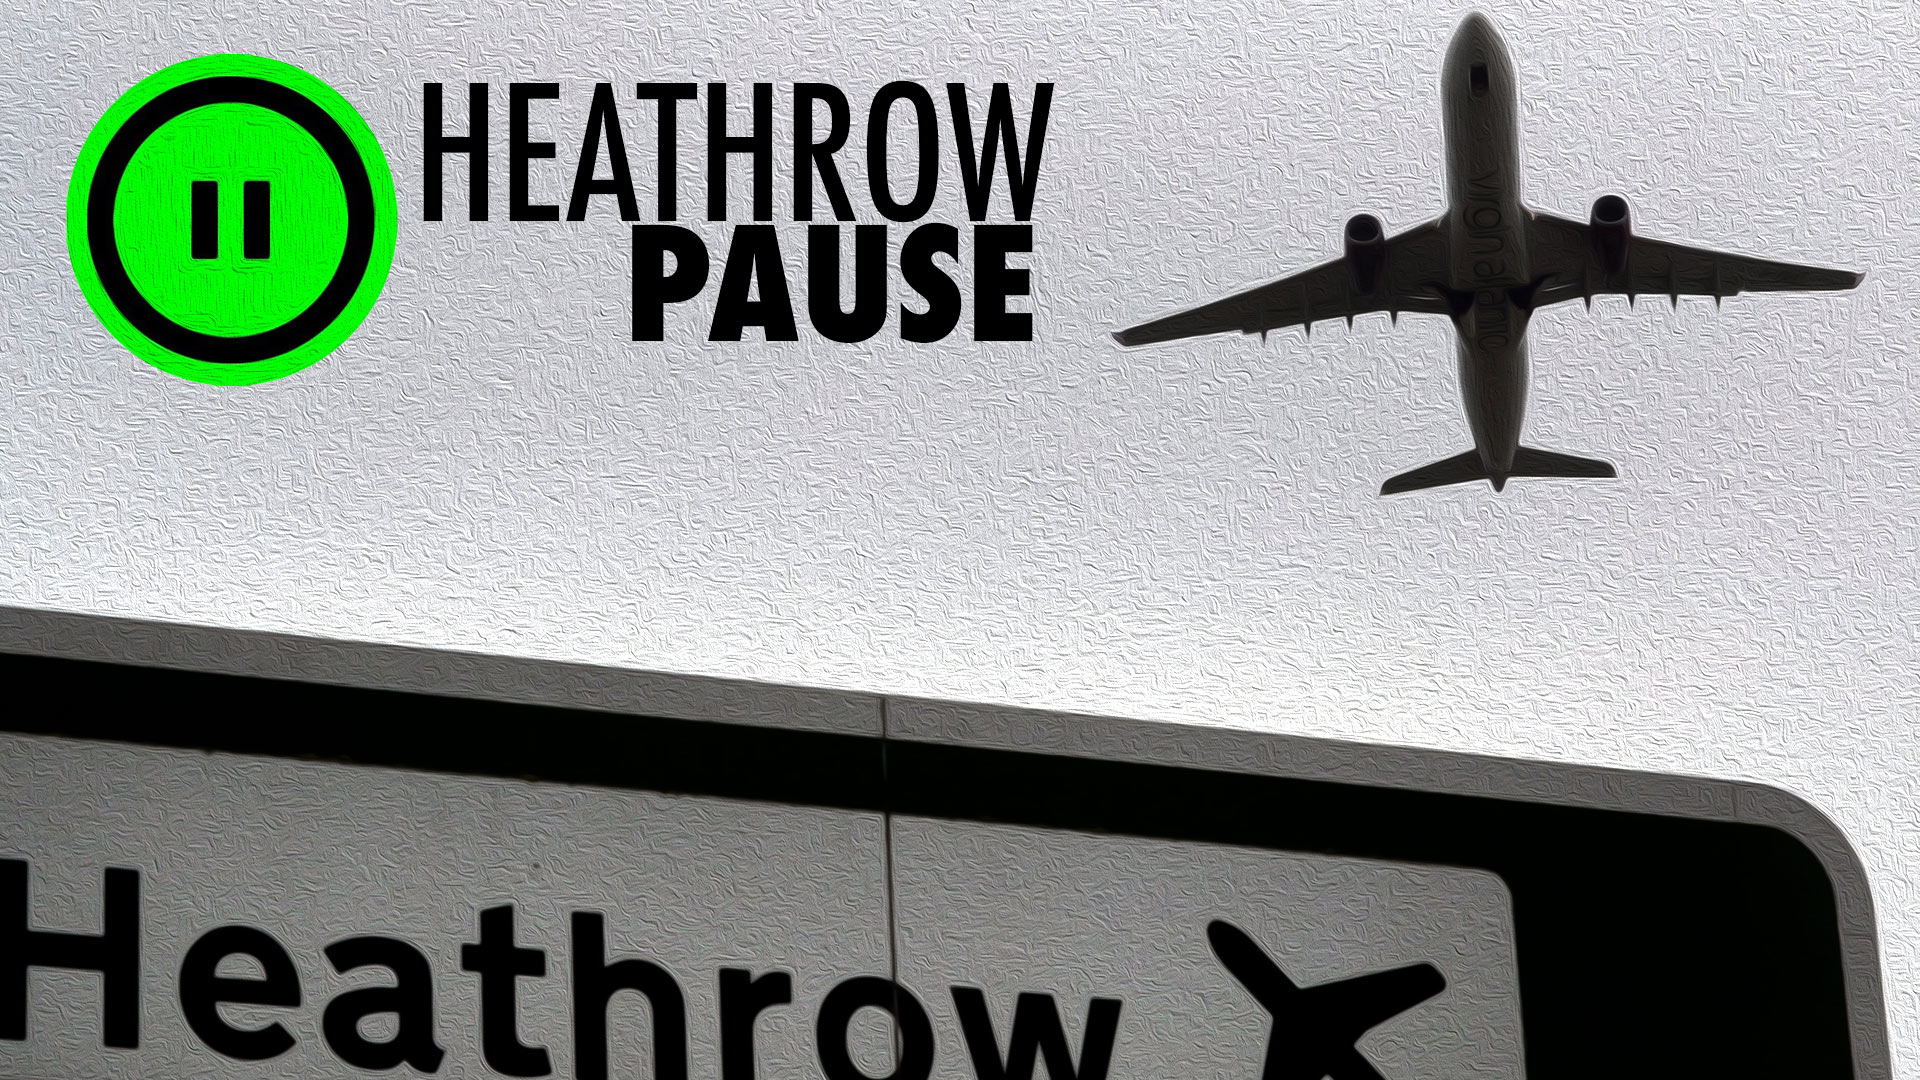 Heathrow Pause